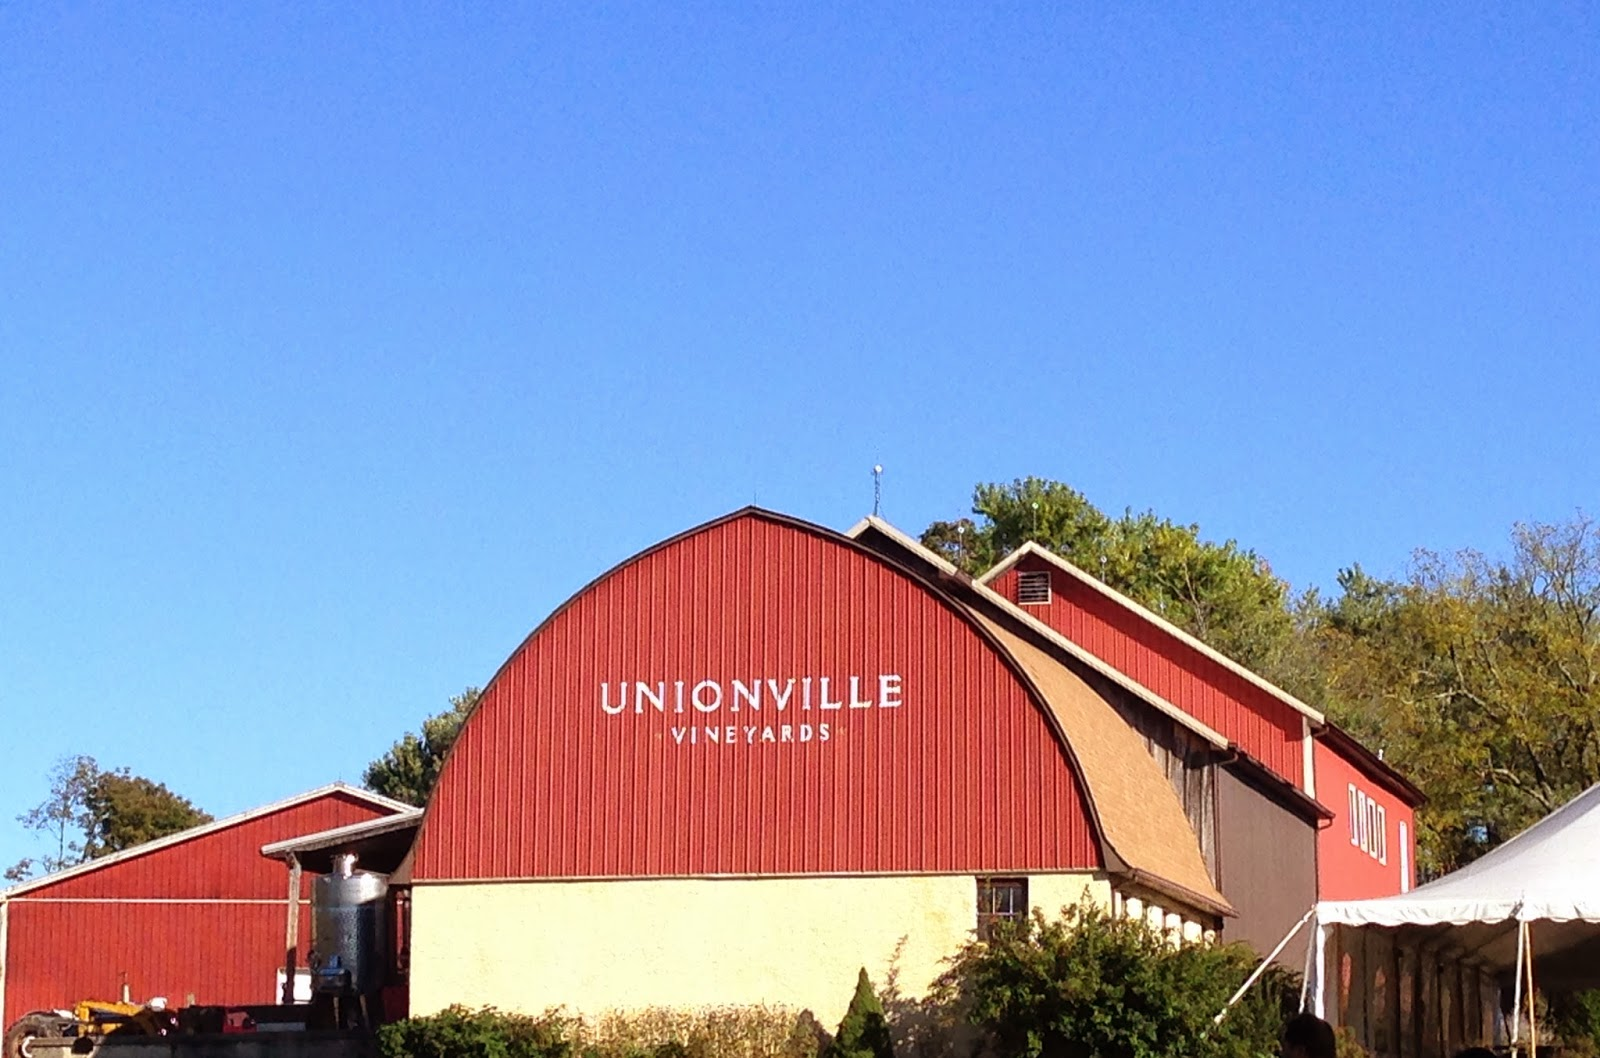 New Jersey Wine Trail - Unionville winery